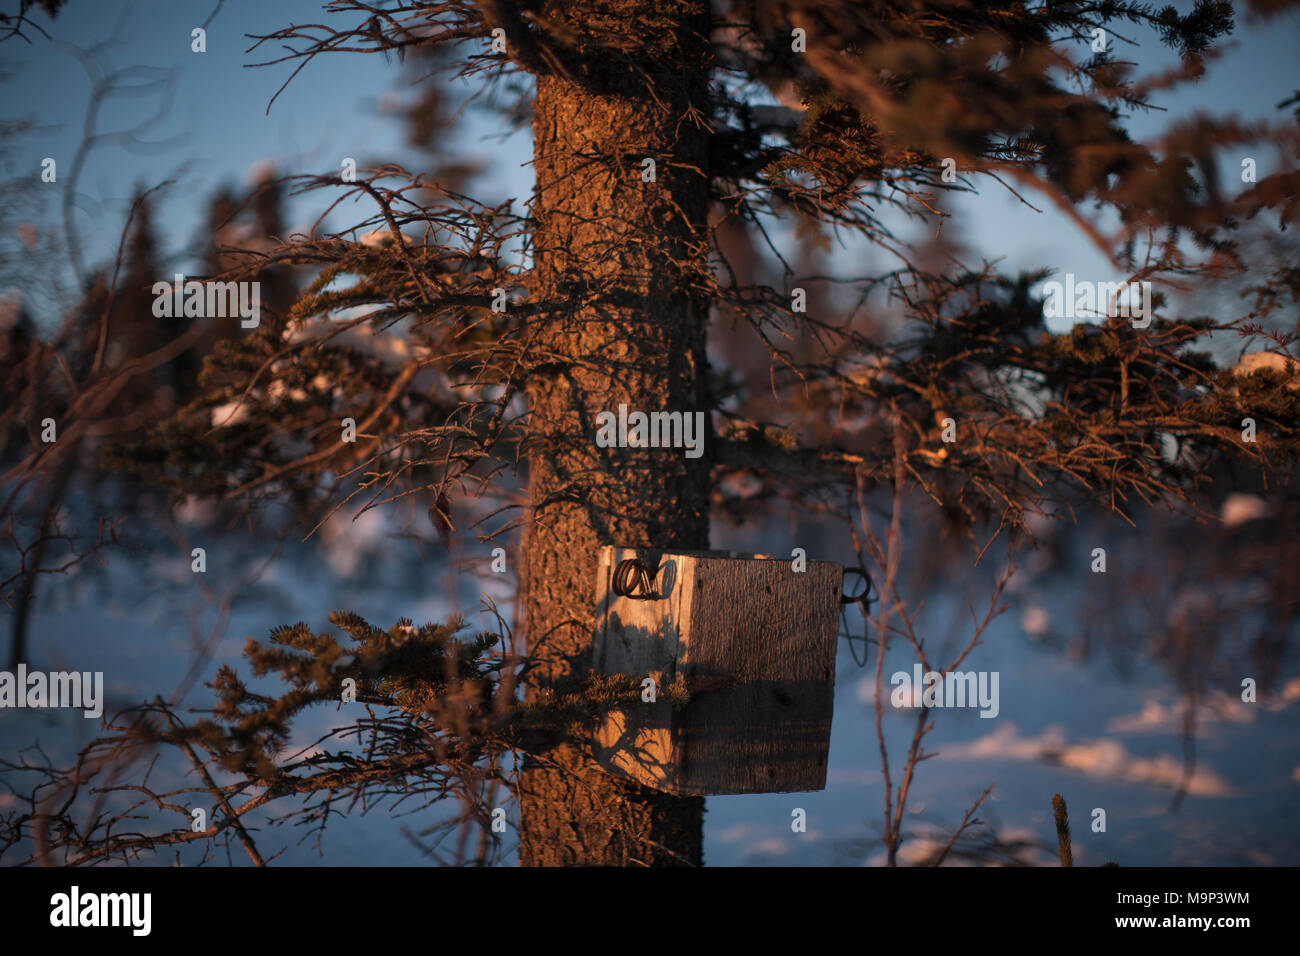 A marten trap in Yukon Territory, November 17, 2014. Rafal Gerszak/Aurora Photos - Stock Image